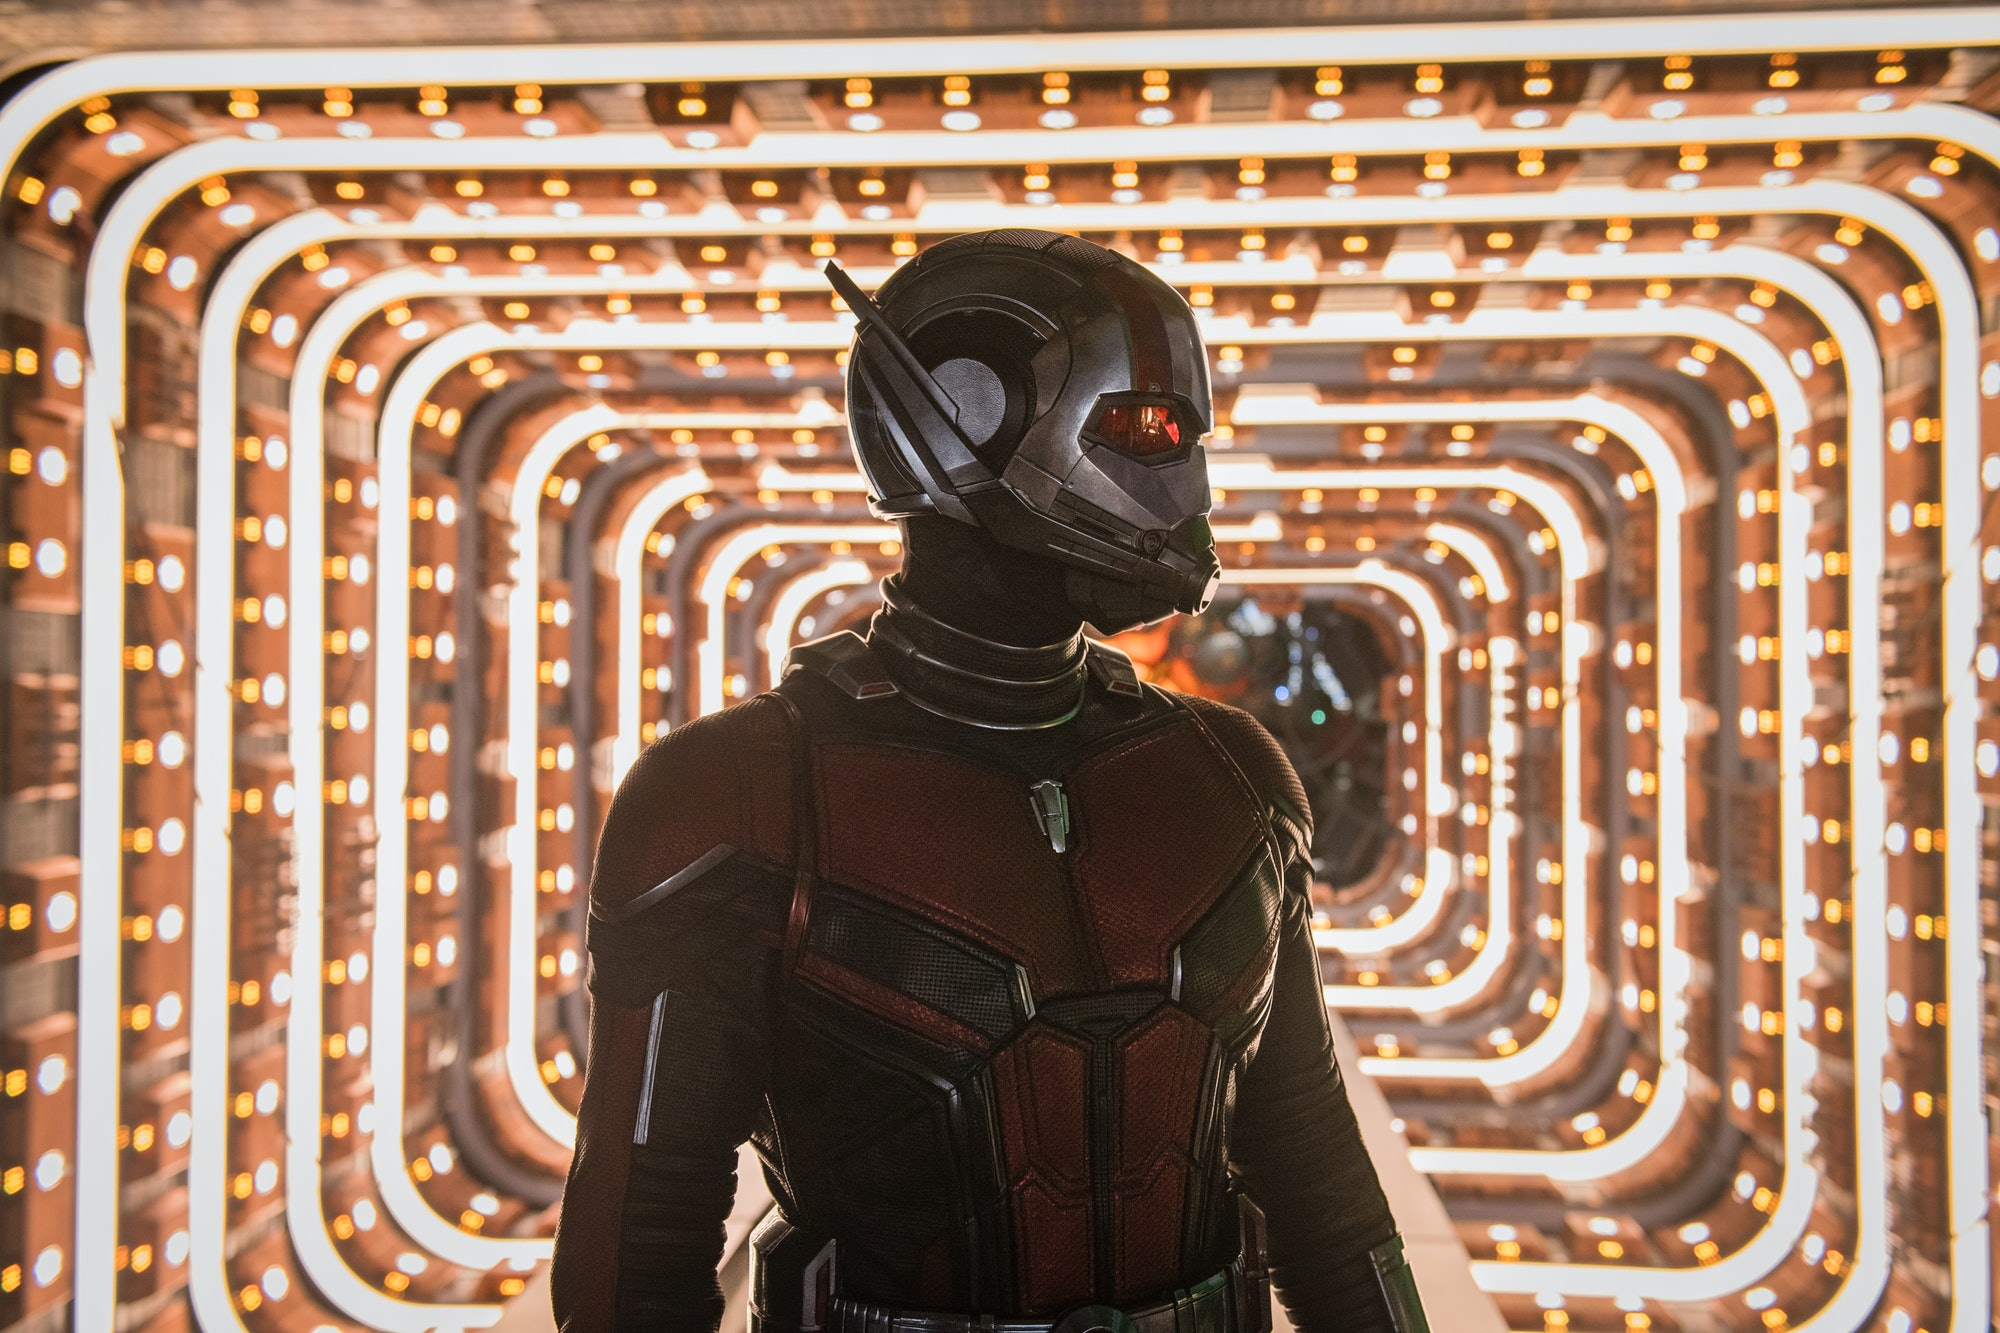 Paul Rudd as Ant-Man in 'Ant-Man and the Wasp'.